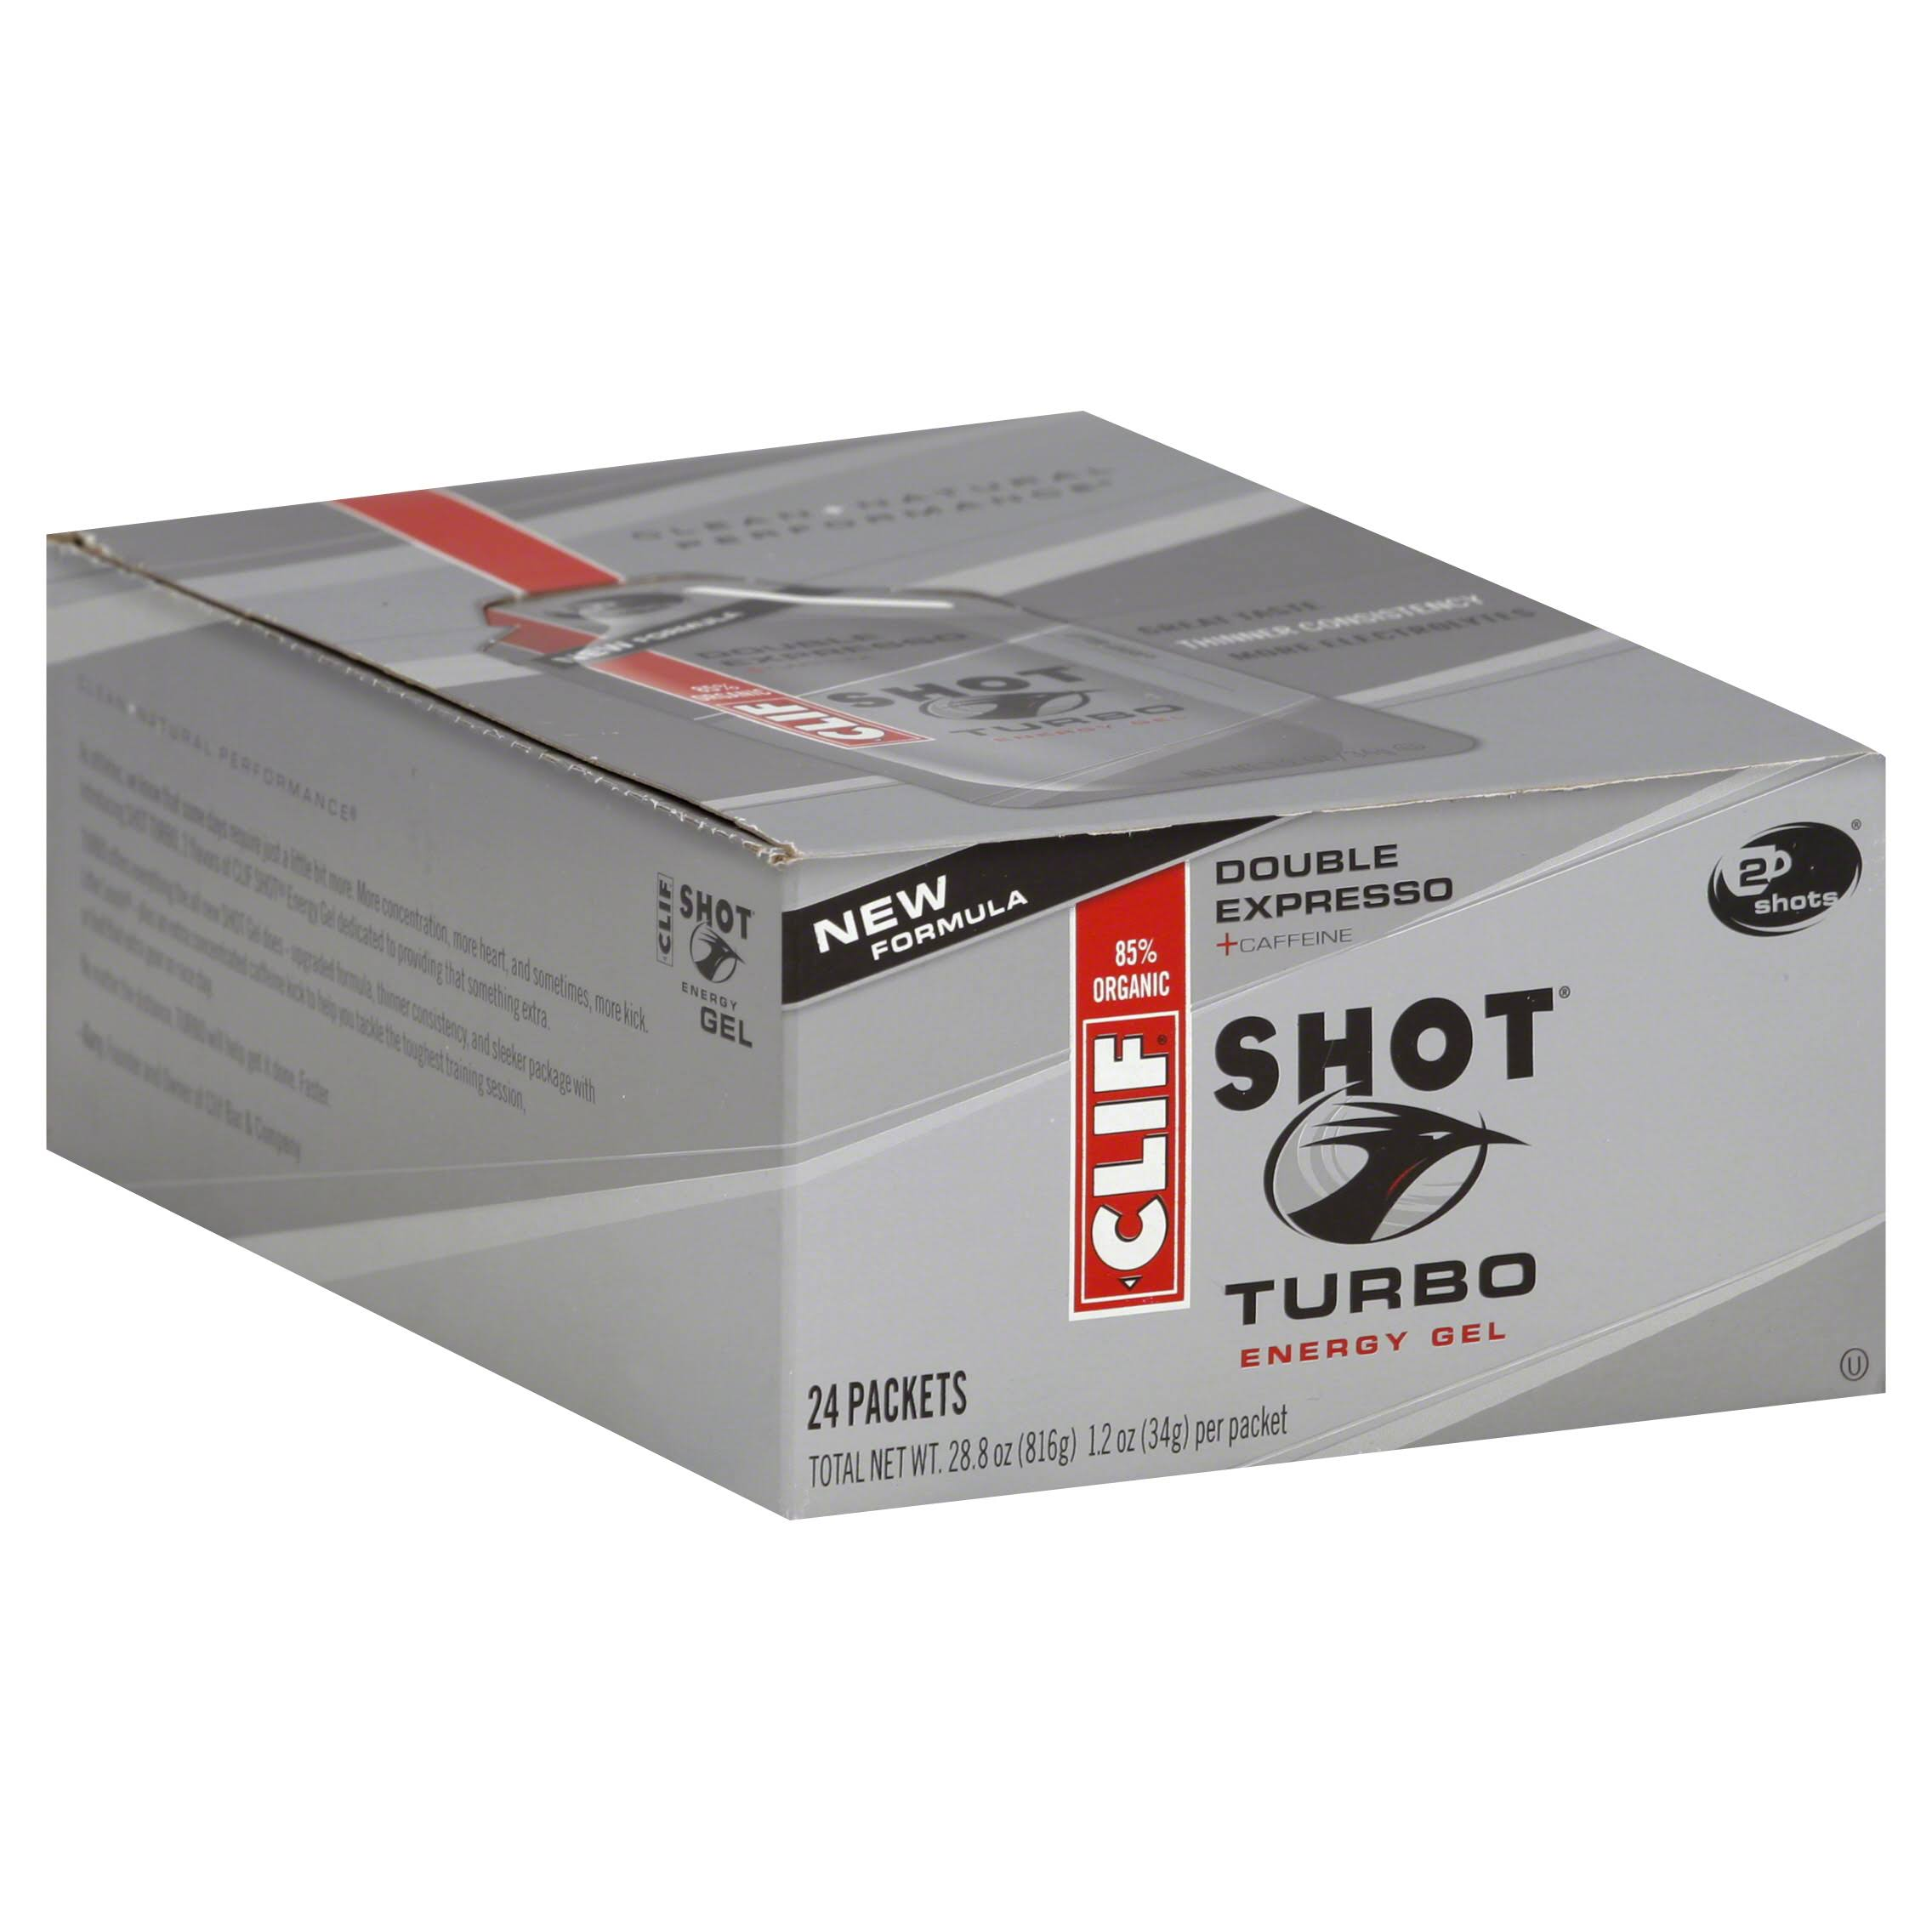 Clif Shot Turbo Energy Gel - Double Espresso